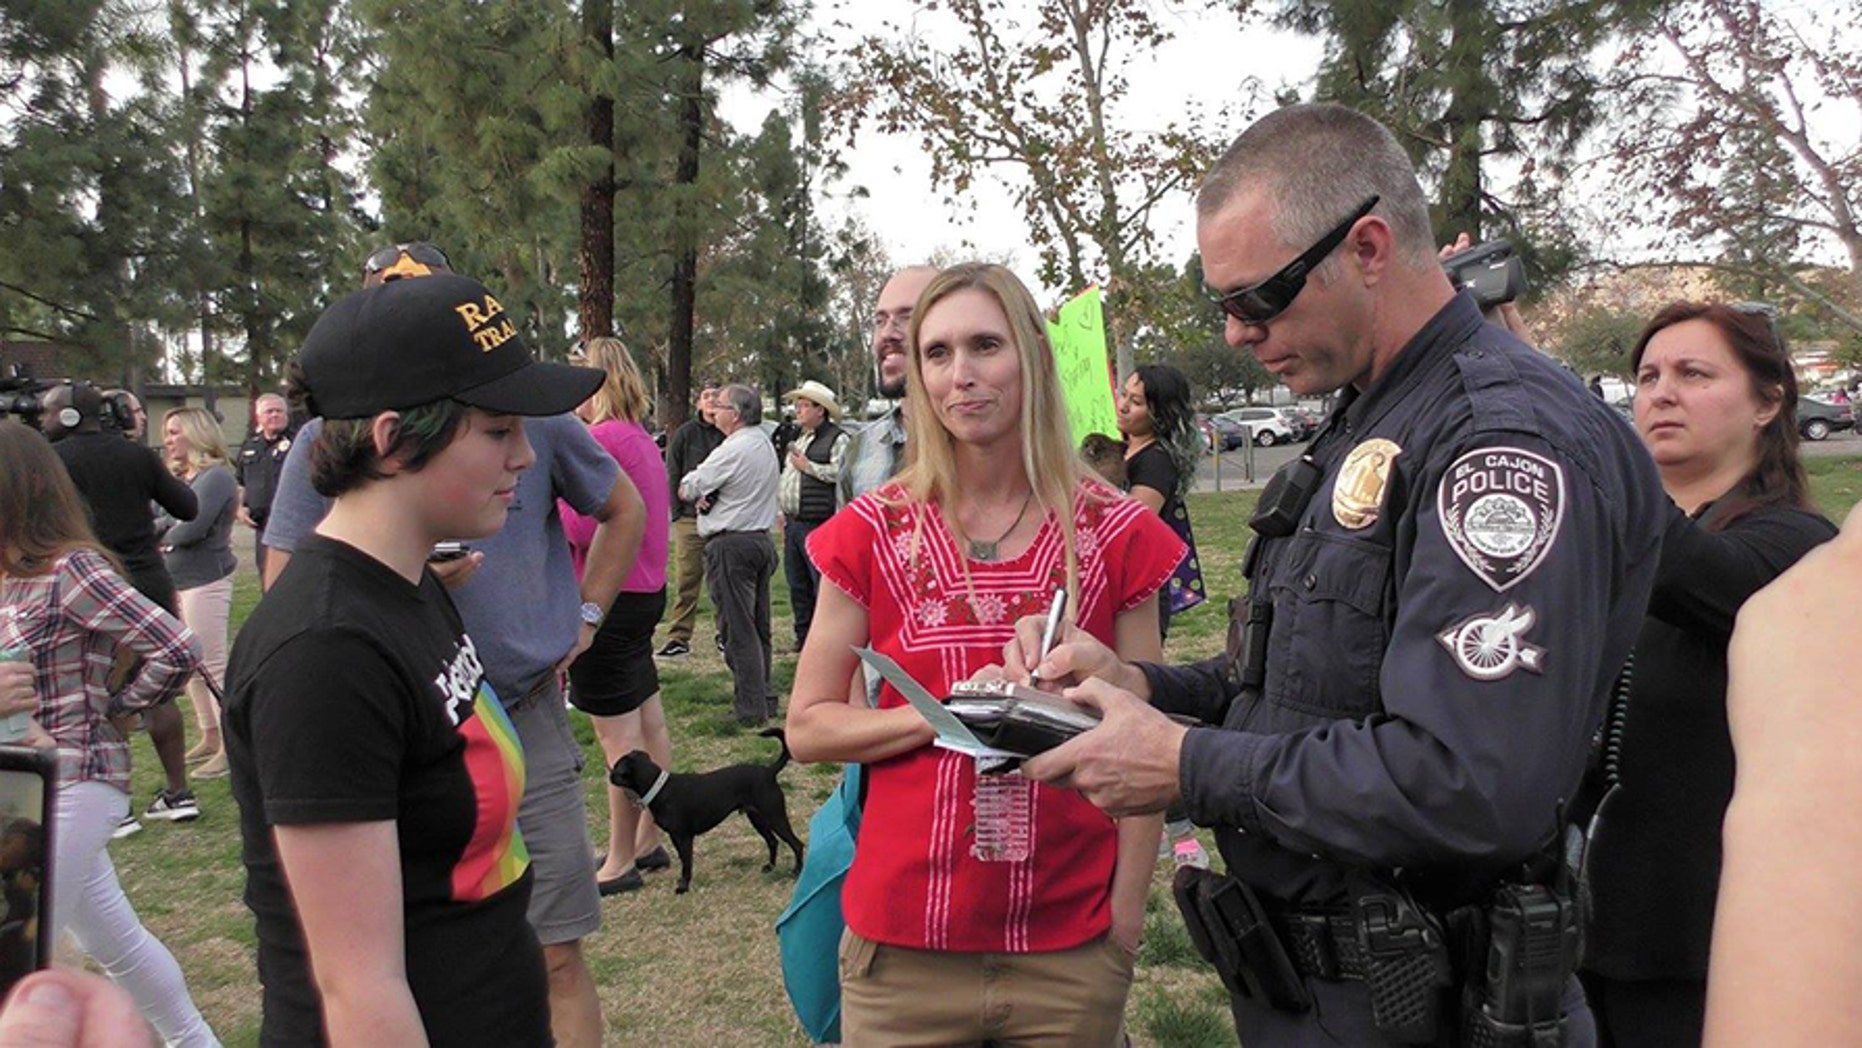 A group of volunteers were issued citations for feeding the homeless, violating a city ordinance.